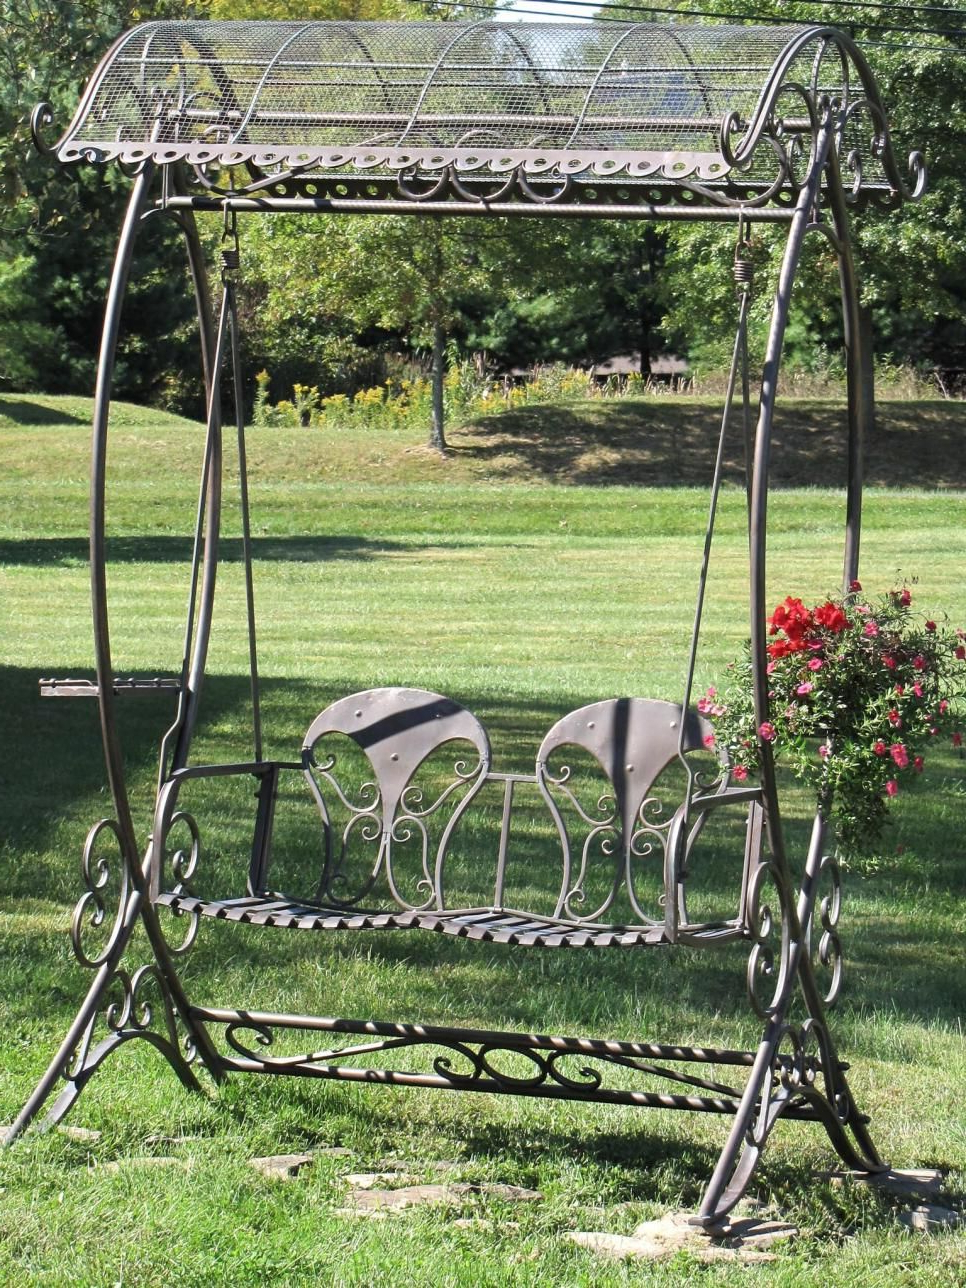 Garden Statues, Garden, Swing Design With Most Current 1 Person Antique Black Iron Outdoor Swings (View 4 of 25)